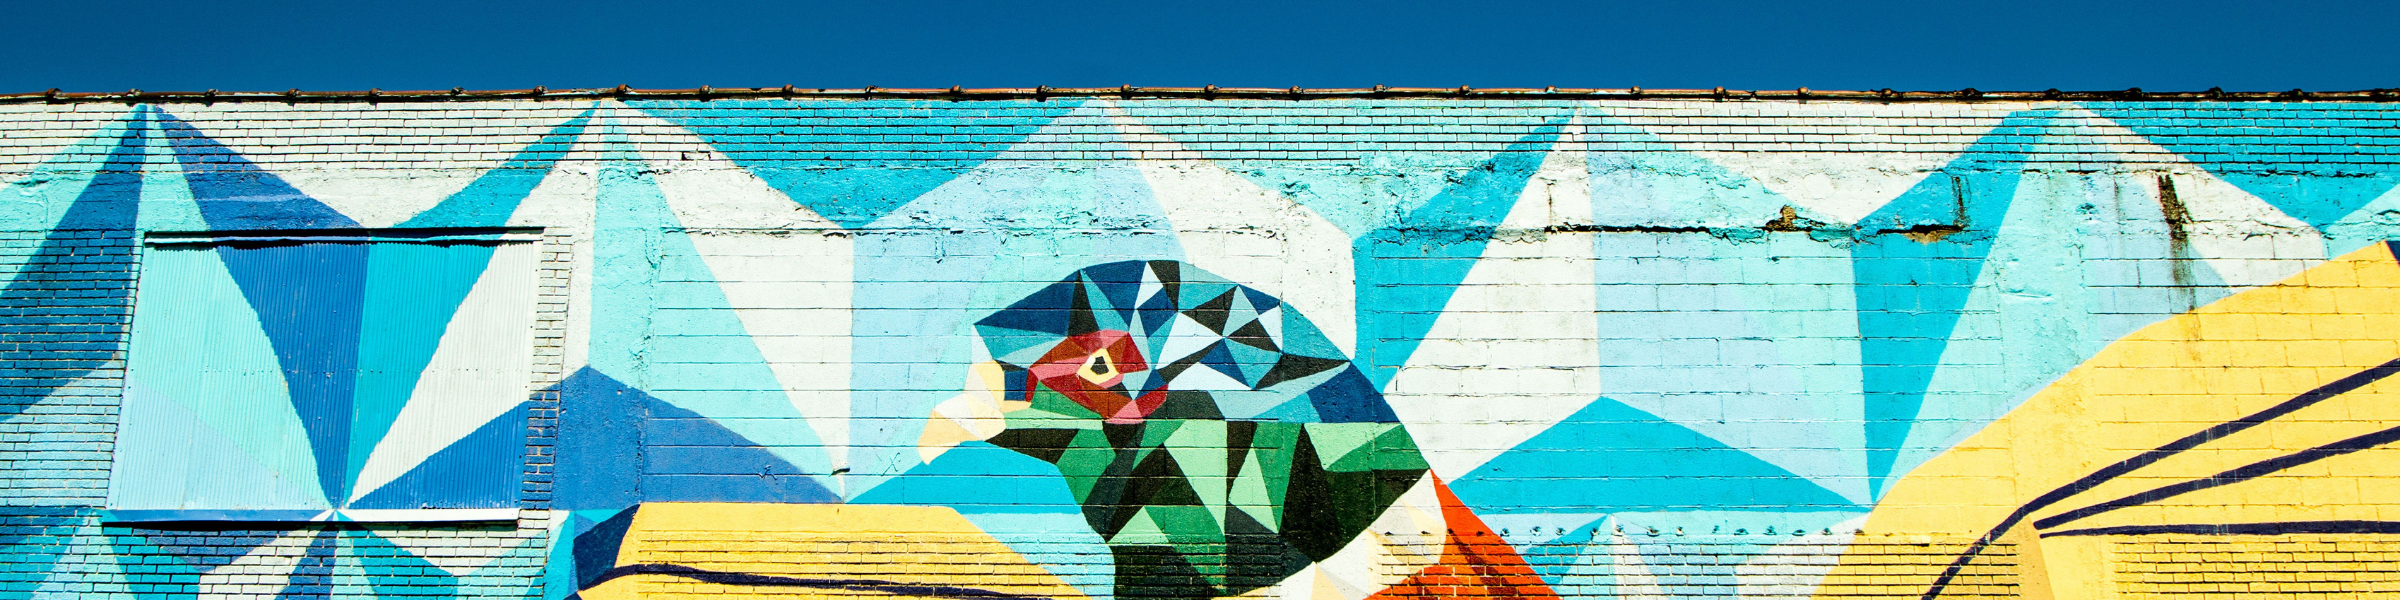 top of mural with bird and shapes with blue skies behind it